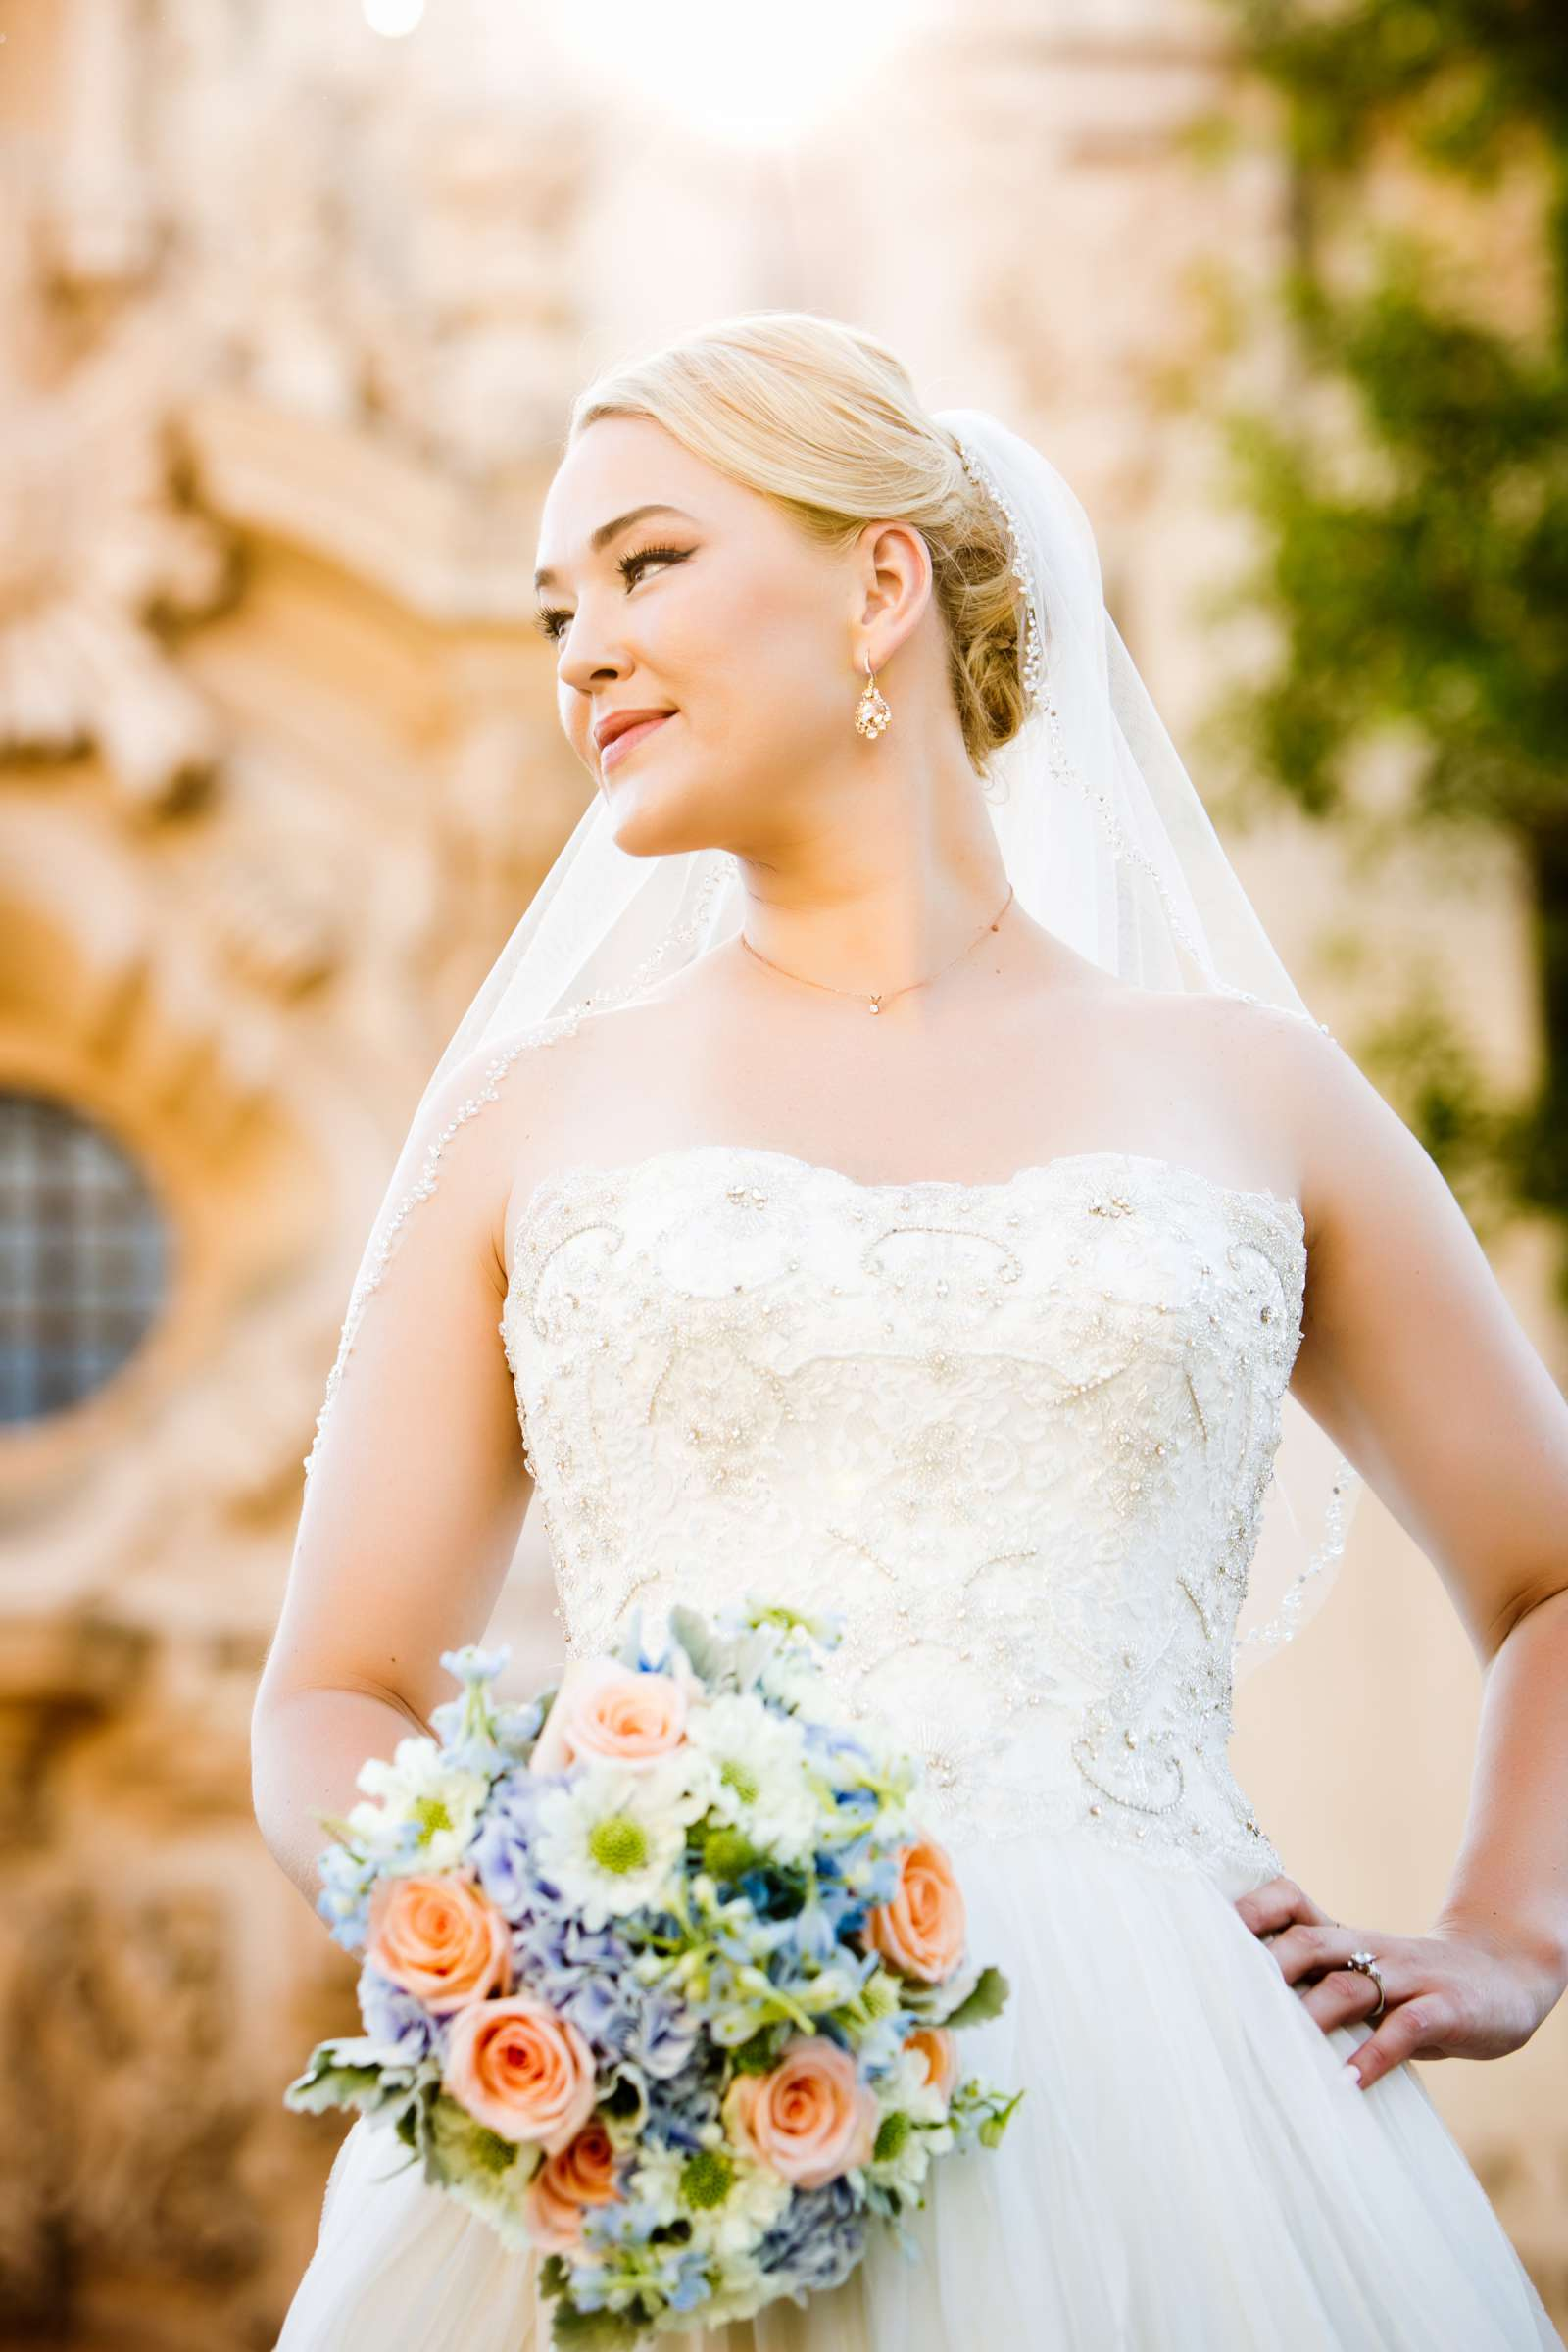 The Prado Wedding coordinated by Sublime Weddings, Ashley and Andrew Wedding Photo #26 by True Photography